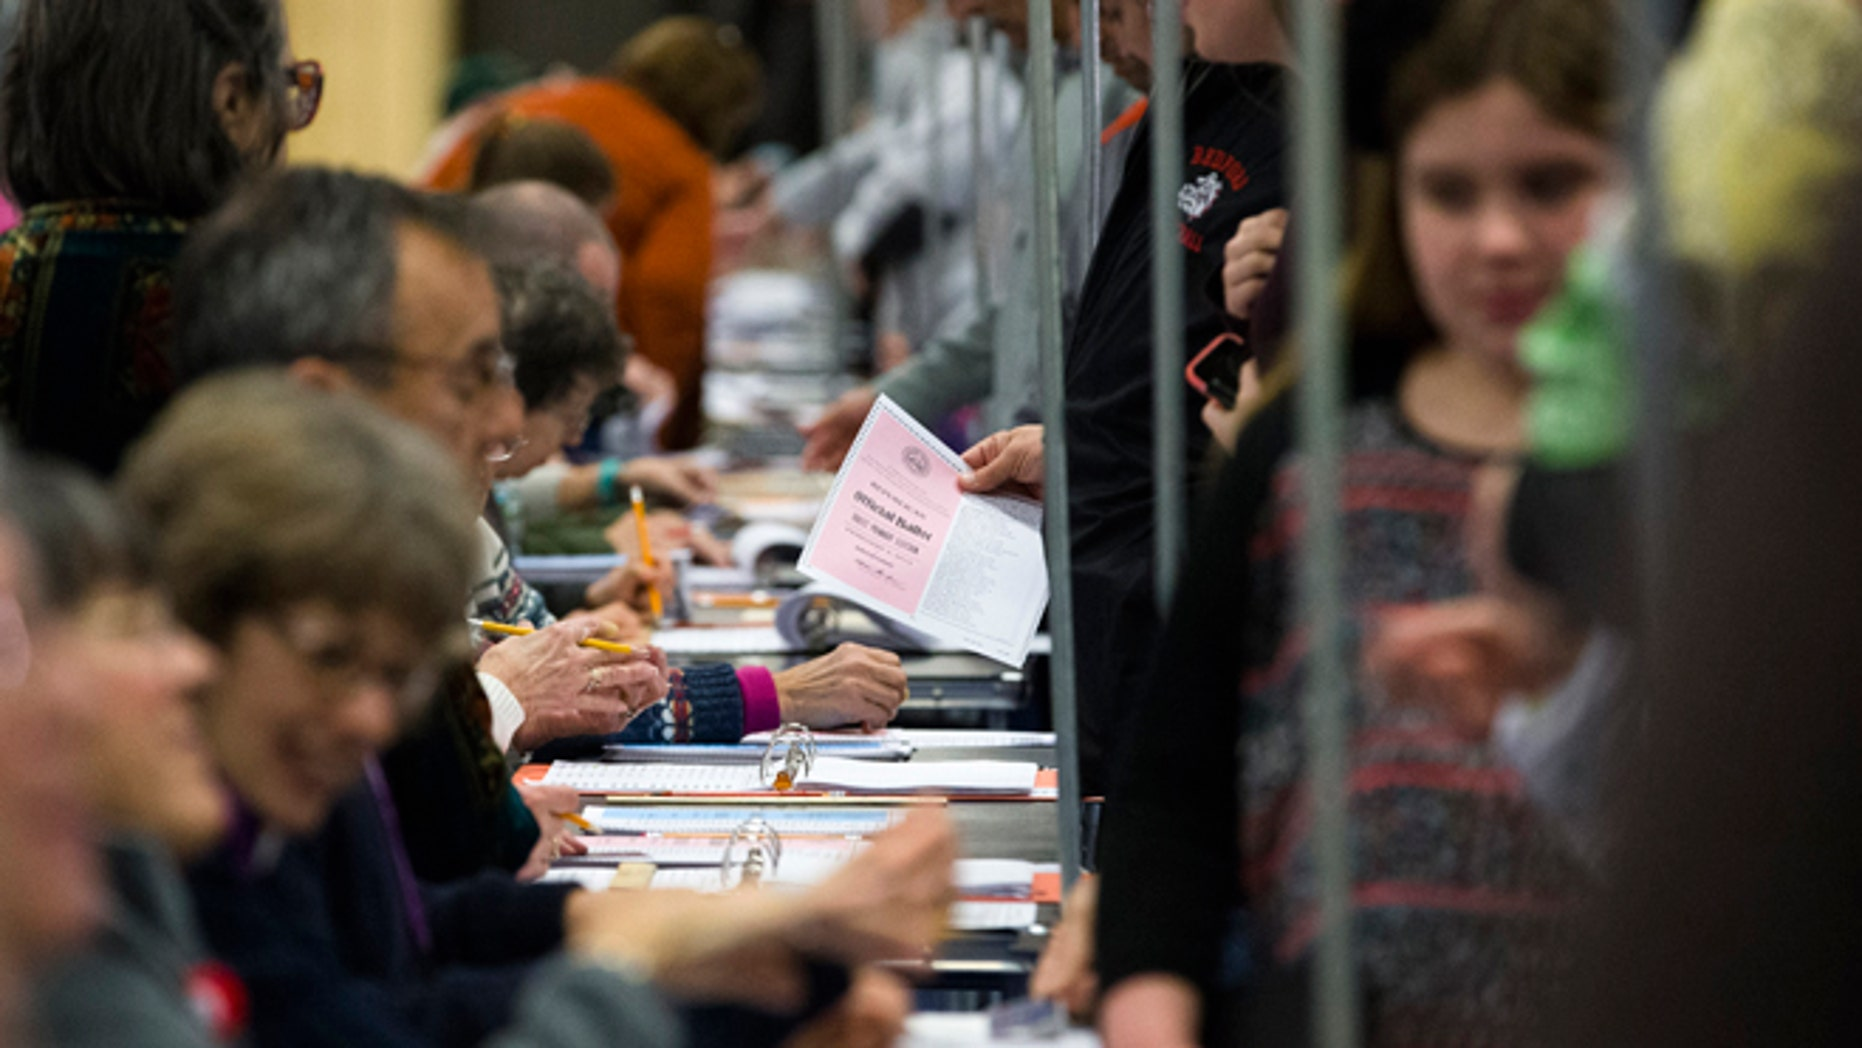 Voters collect their ballots at a polling place inside Bedford High School, Tuesday, Feb. 9, 2016, in Bedford, N.H. (AP Photo/John Minchillo)